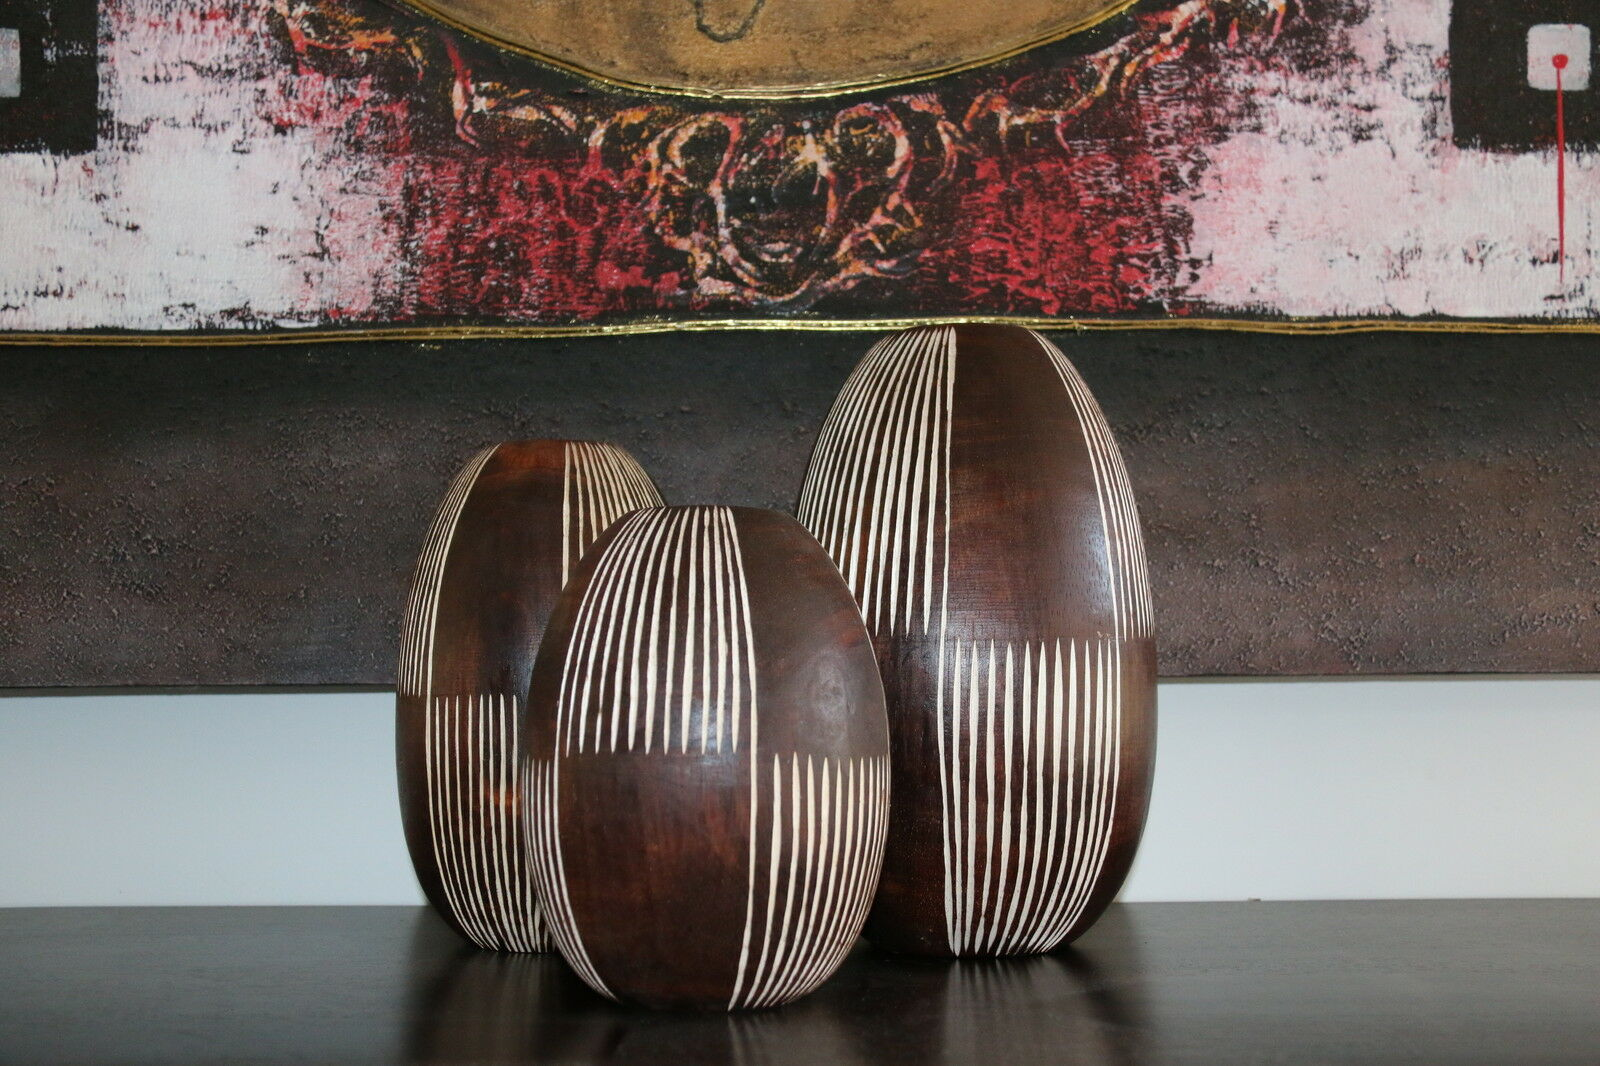 NEW Balinese Wooden Vase - Hand Crafted / Carved Bali Timber Vase - 3 SIZES